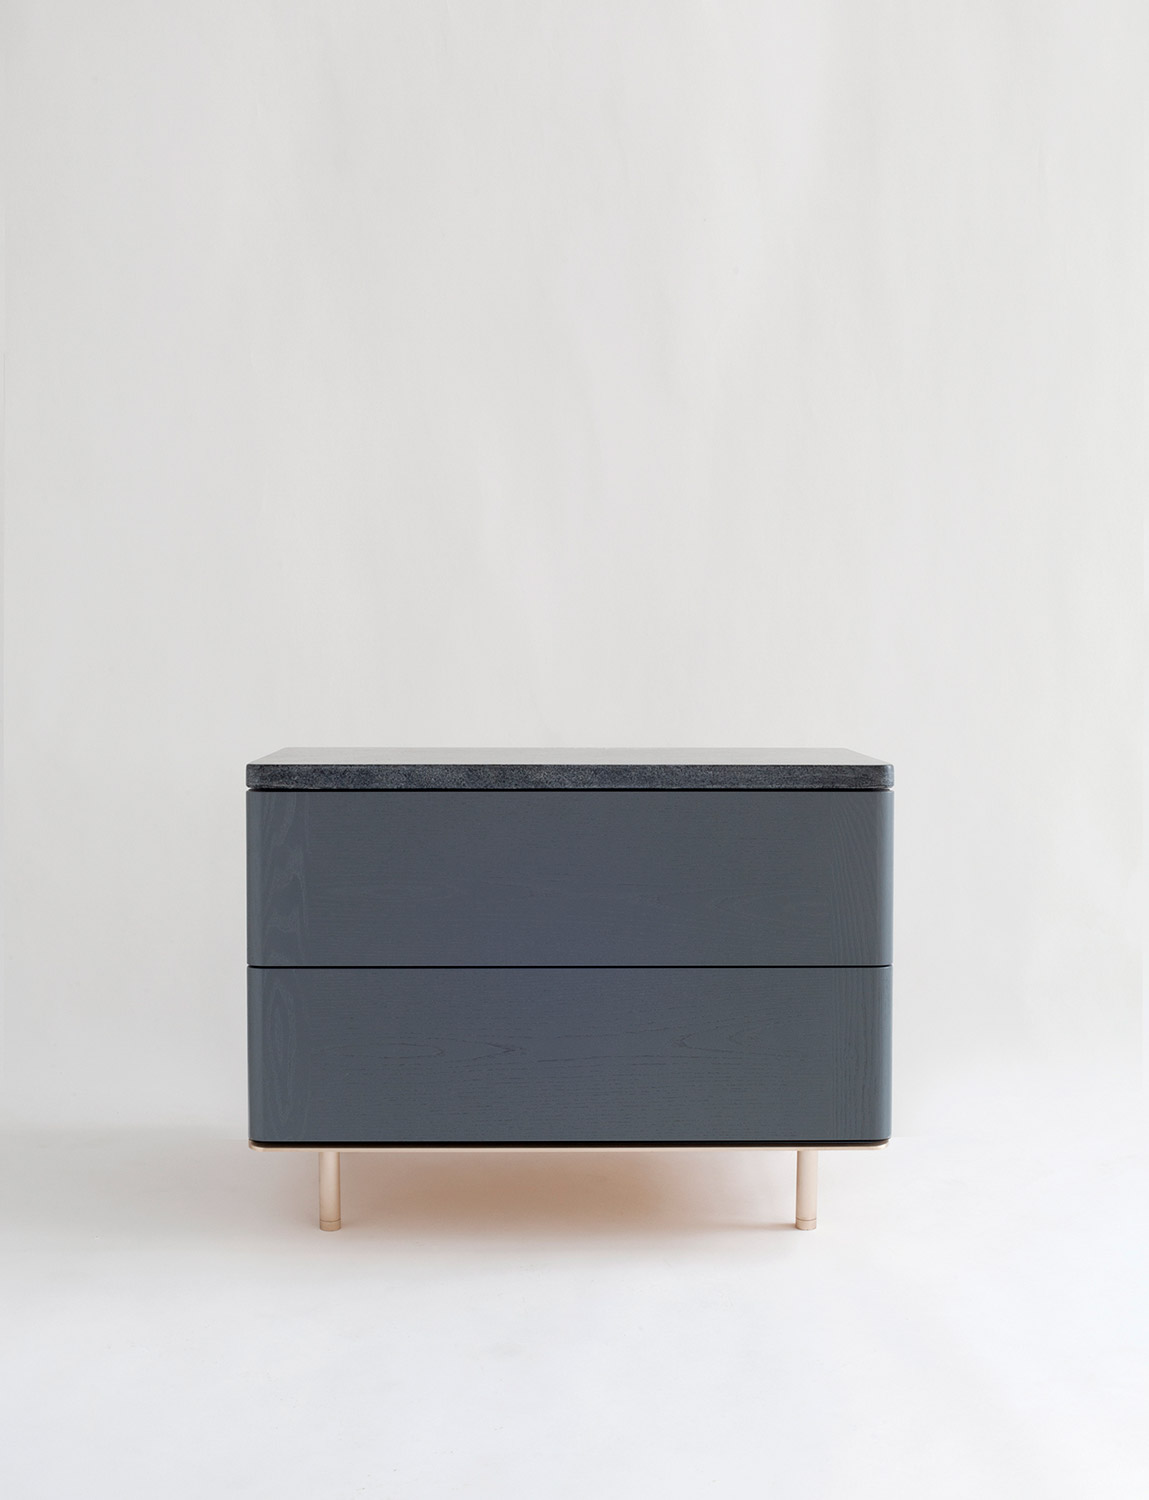 The Ritter Nightstand By Egg Collective